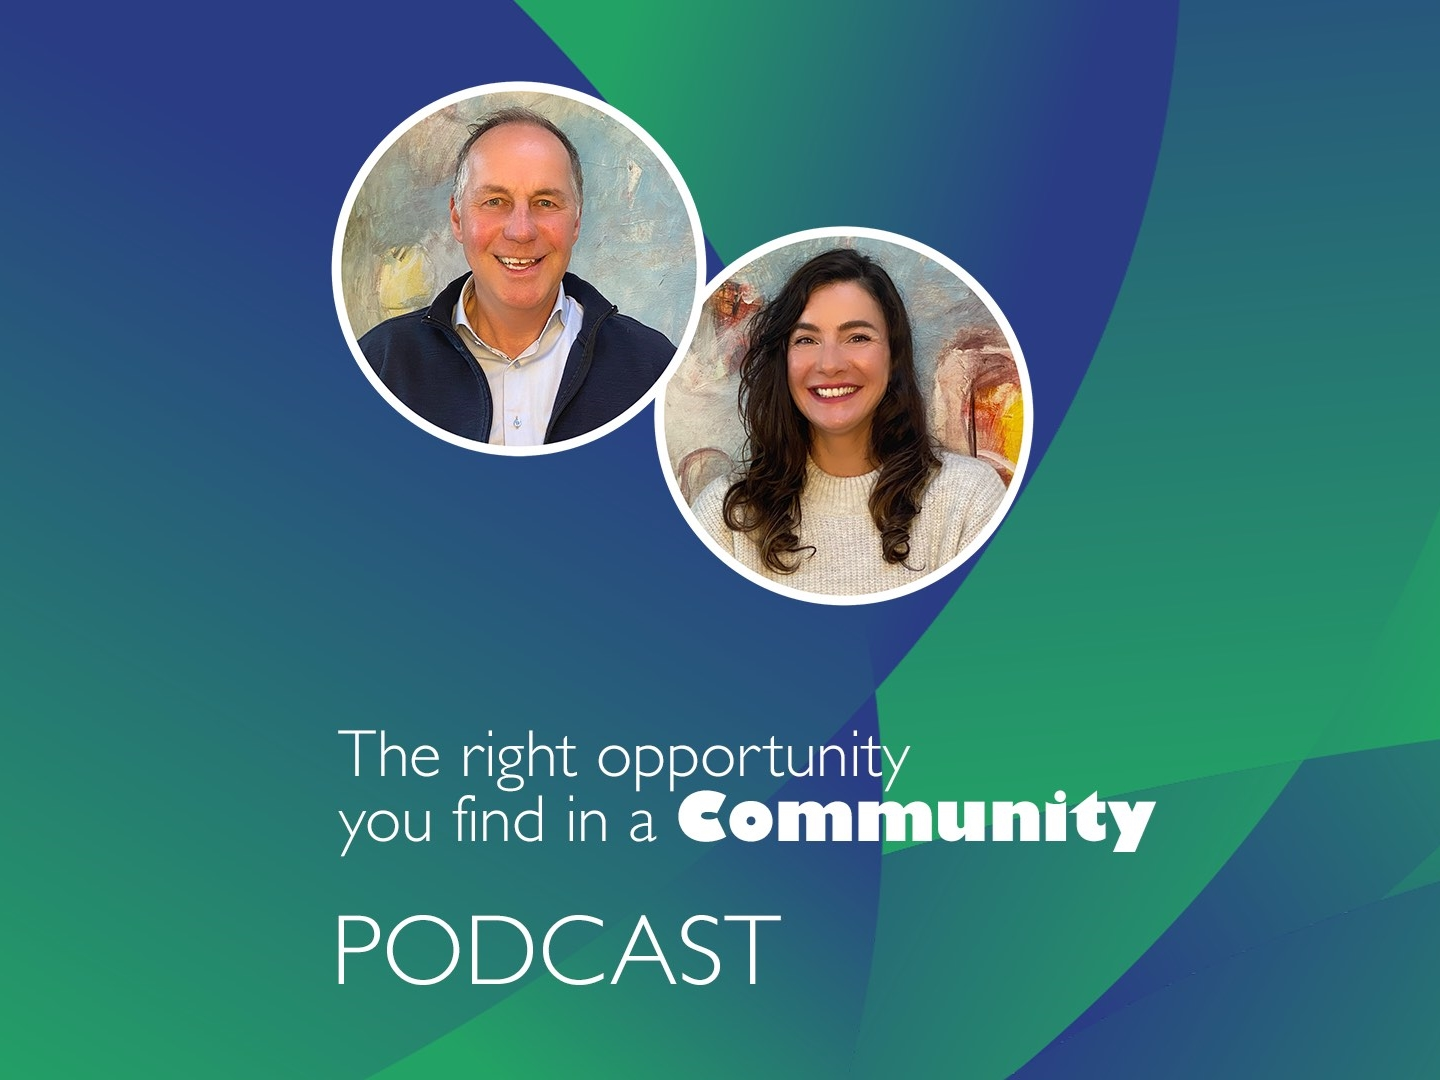 PODCASTS: 'The right opportunity, you find in a community'.